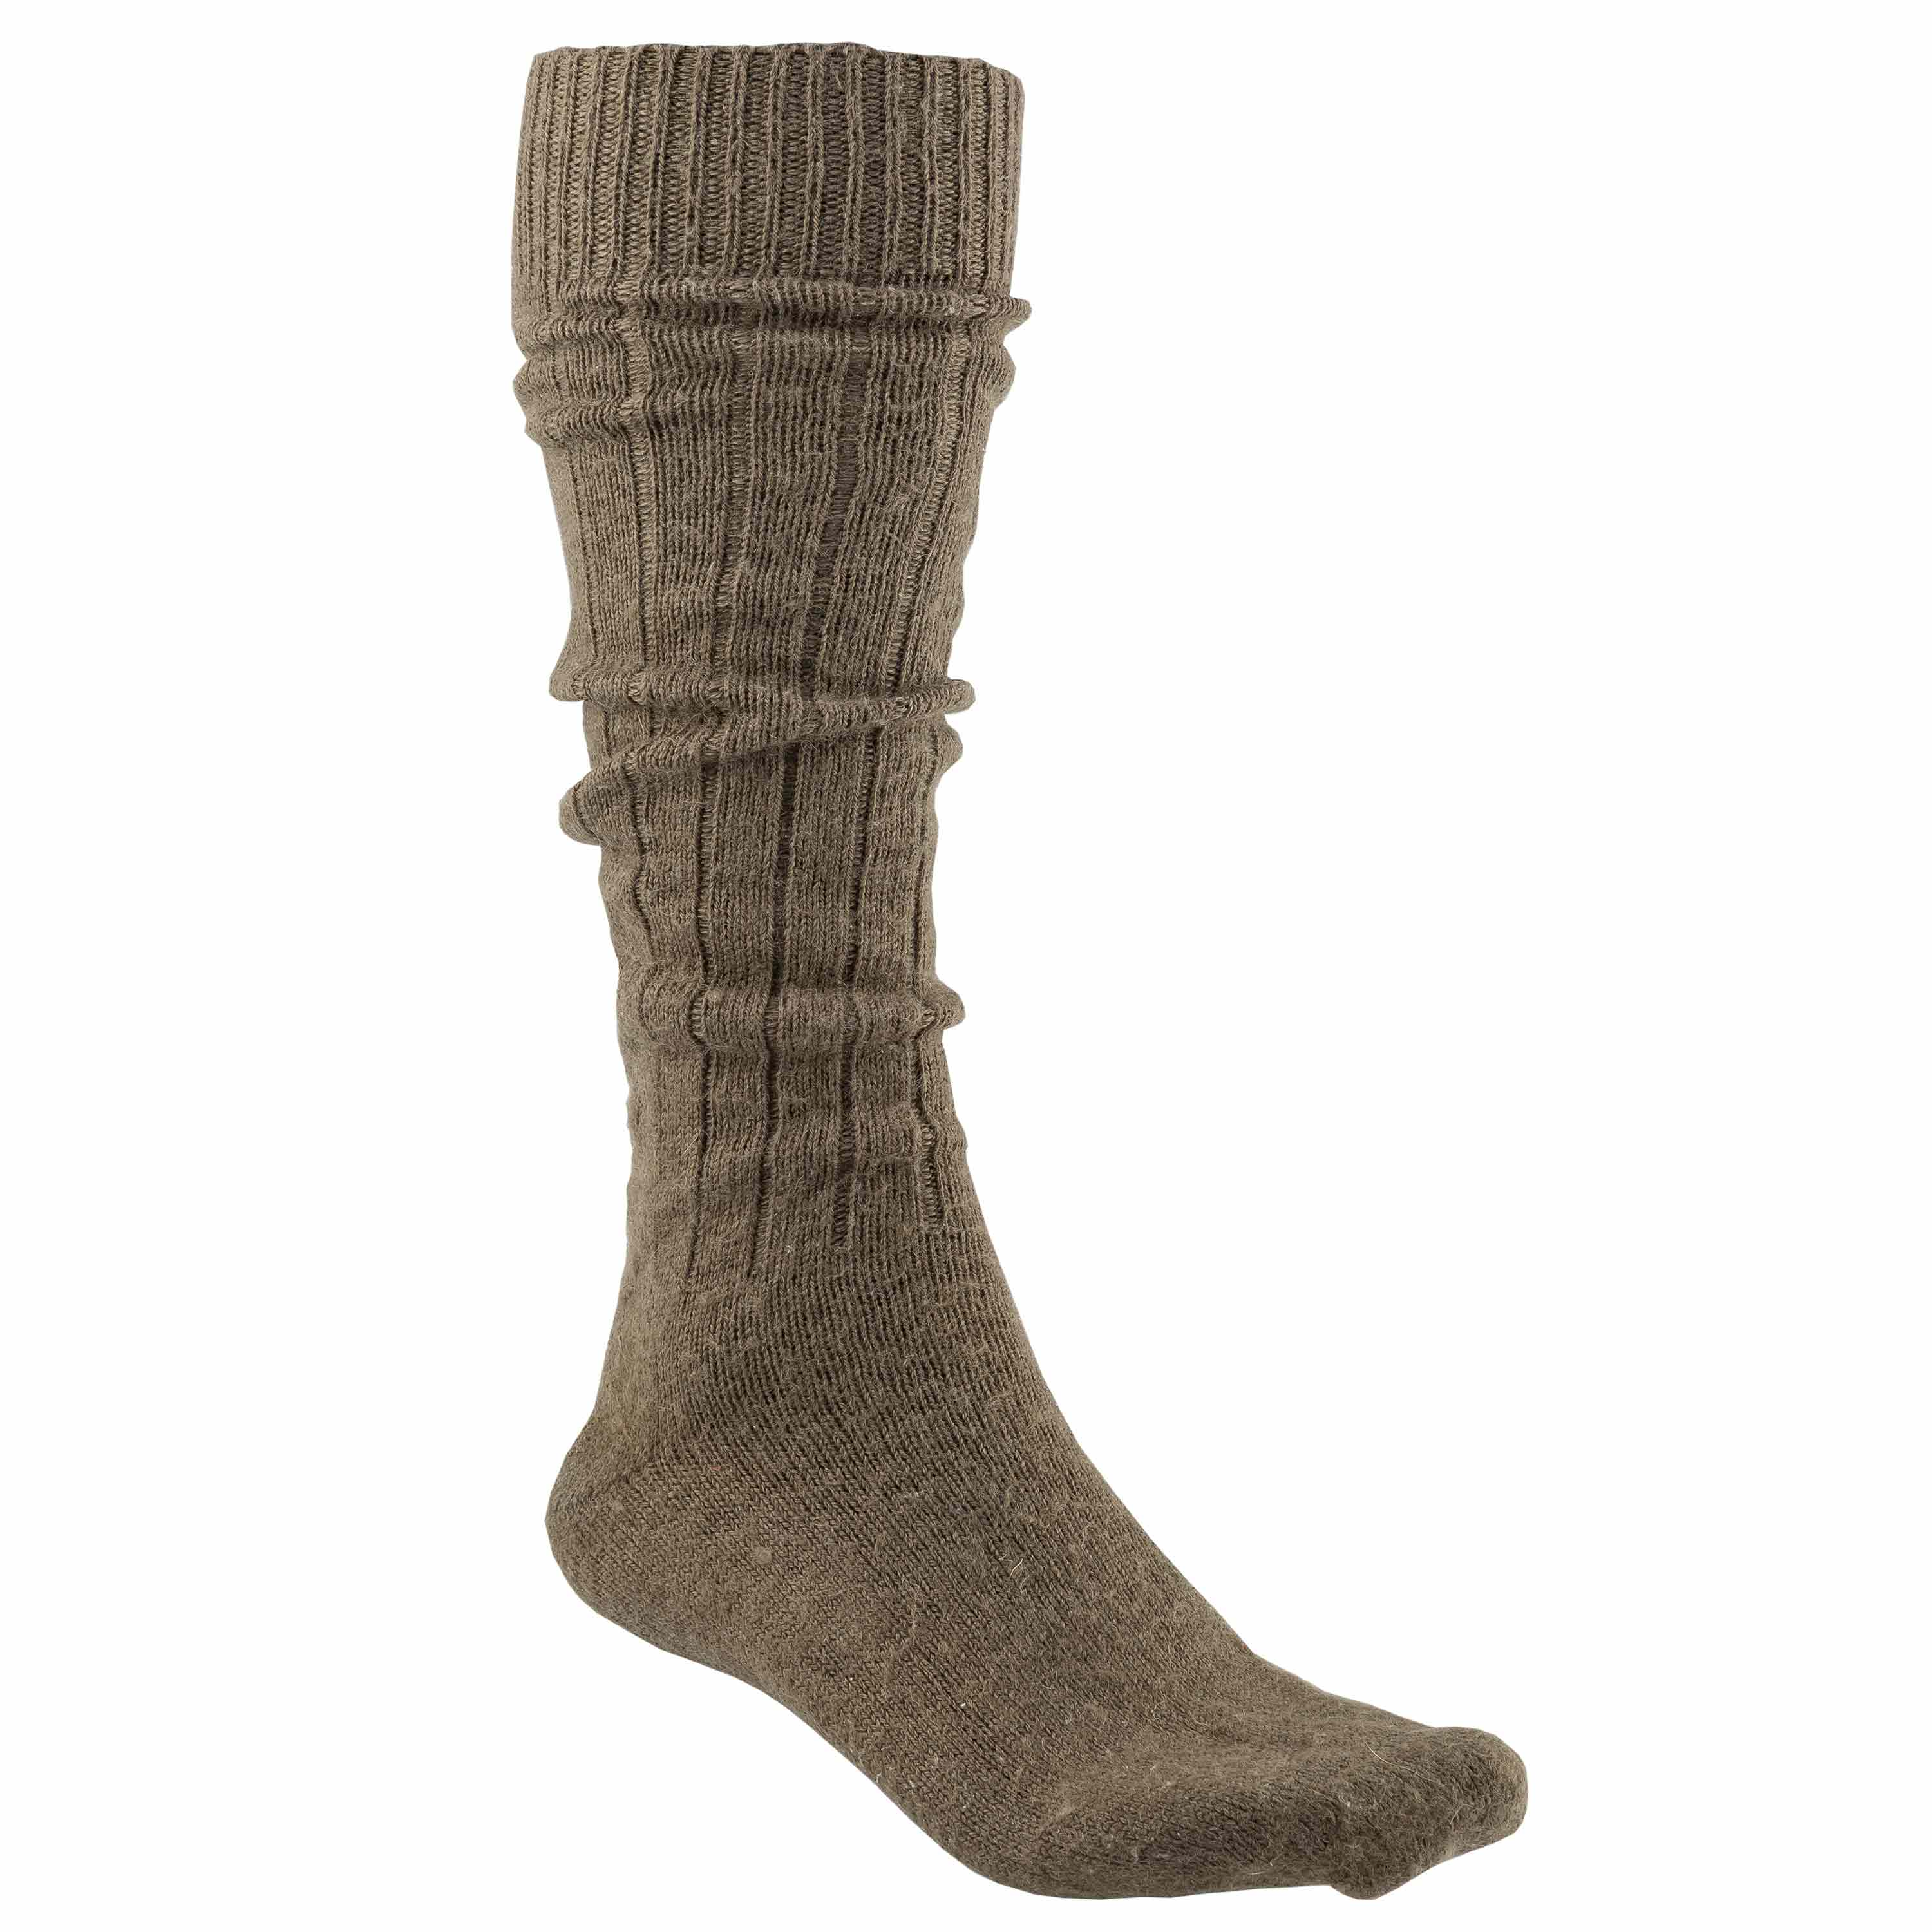 Used BW Long Boot Socks stone gray olive